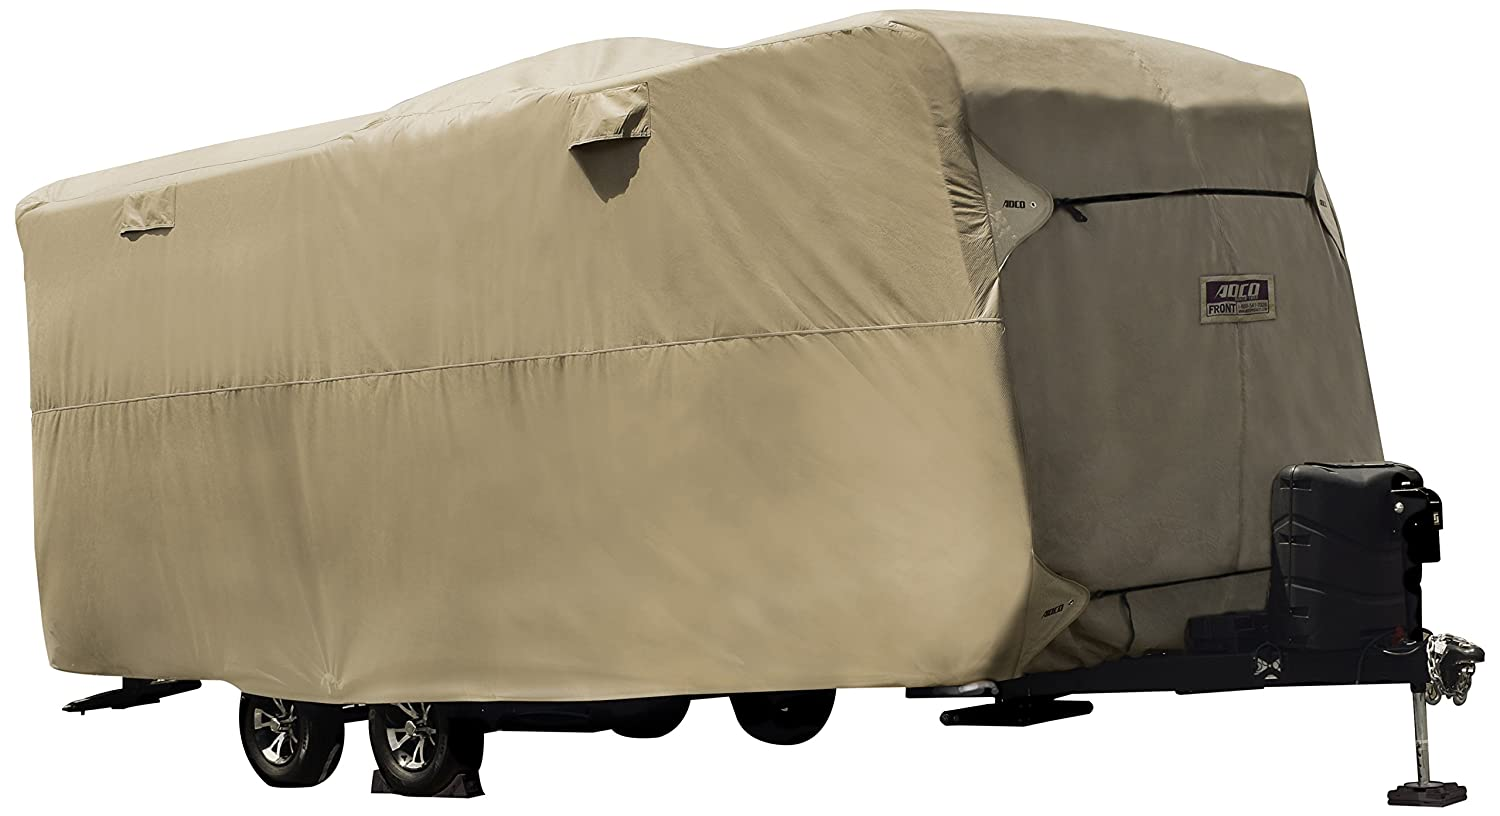 ADCO by Covercraft 74839 Storage Lot Cover for Travel Trailer RV, Fits 15'1'-18', Tan Fits 15' 1-18'